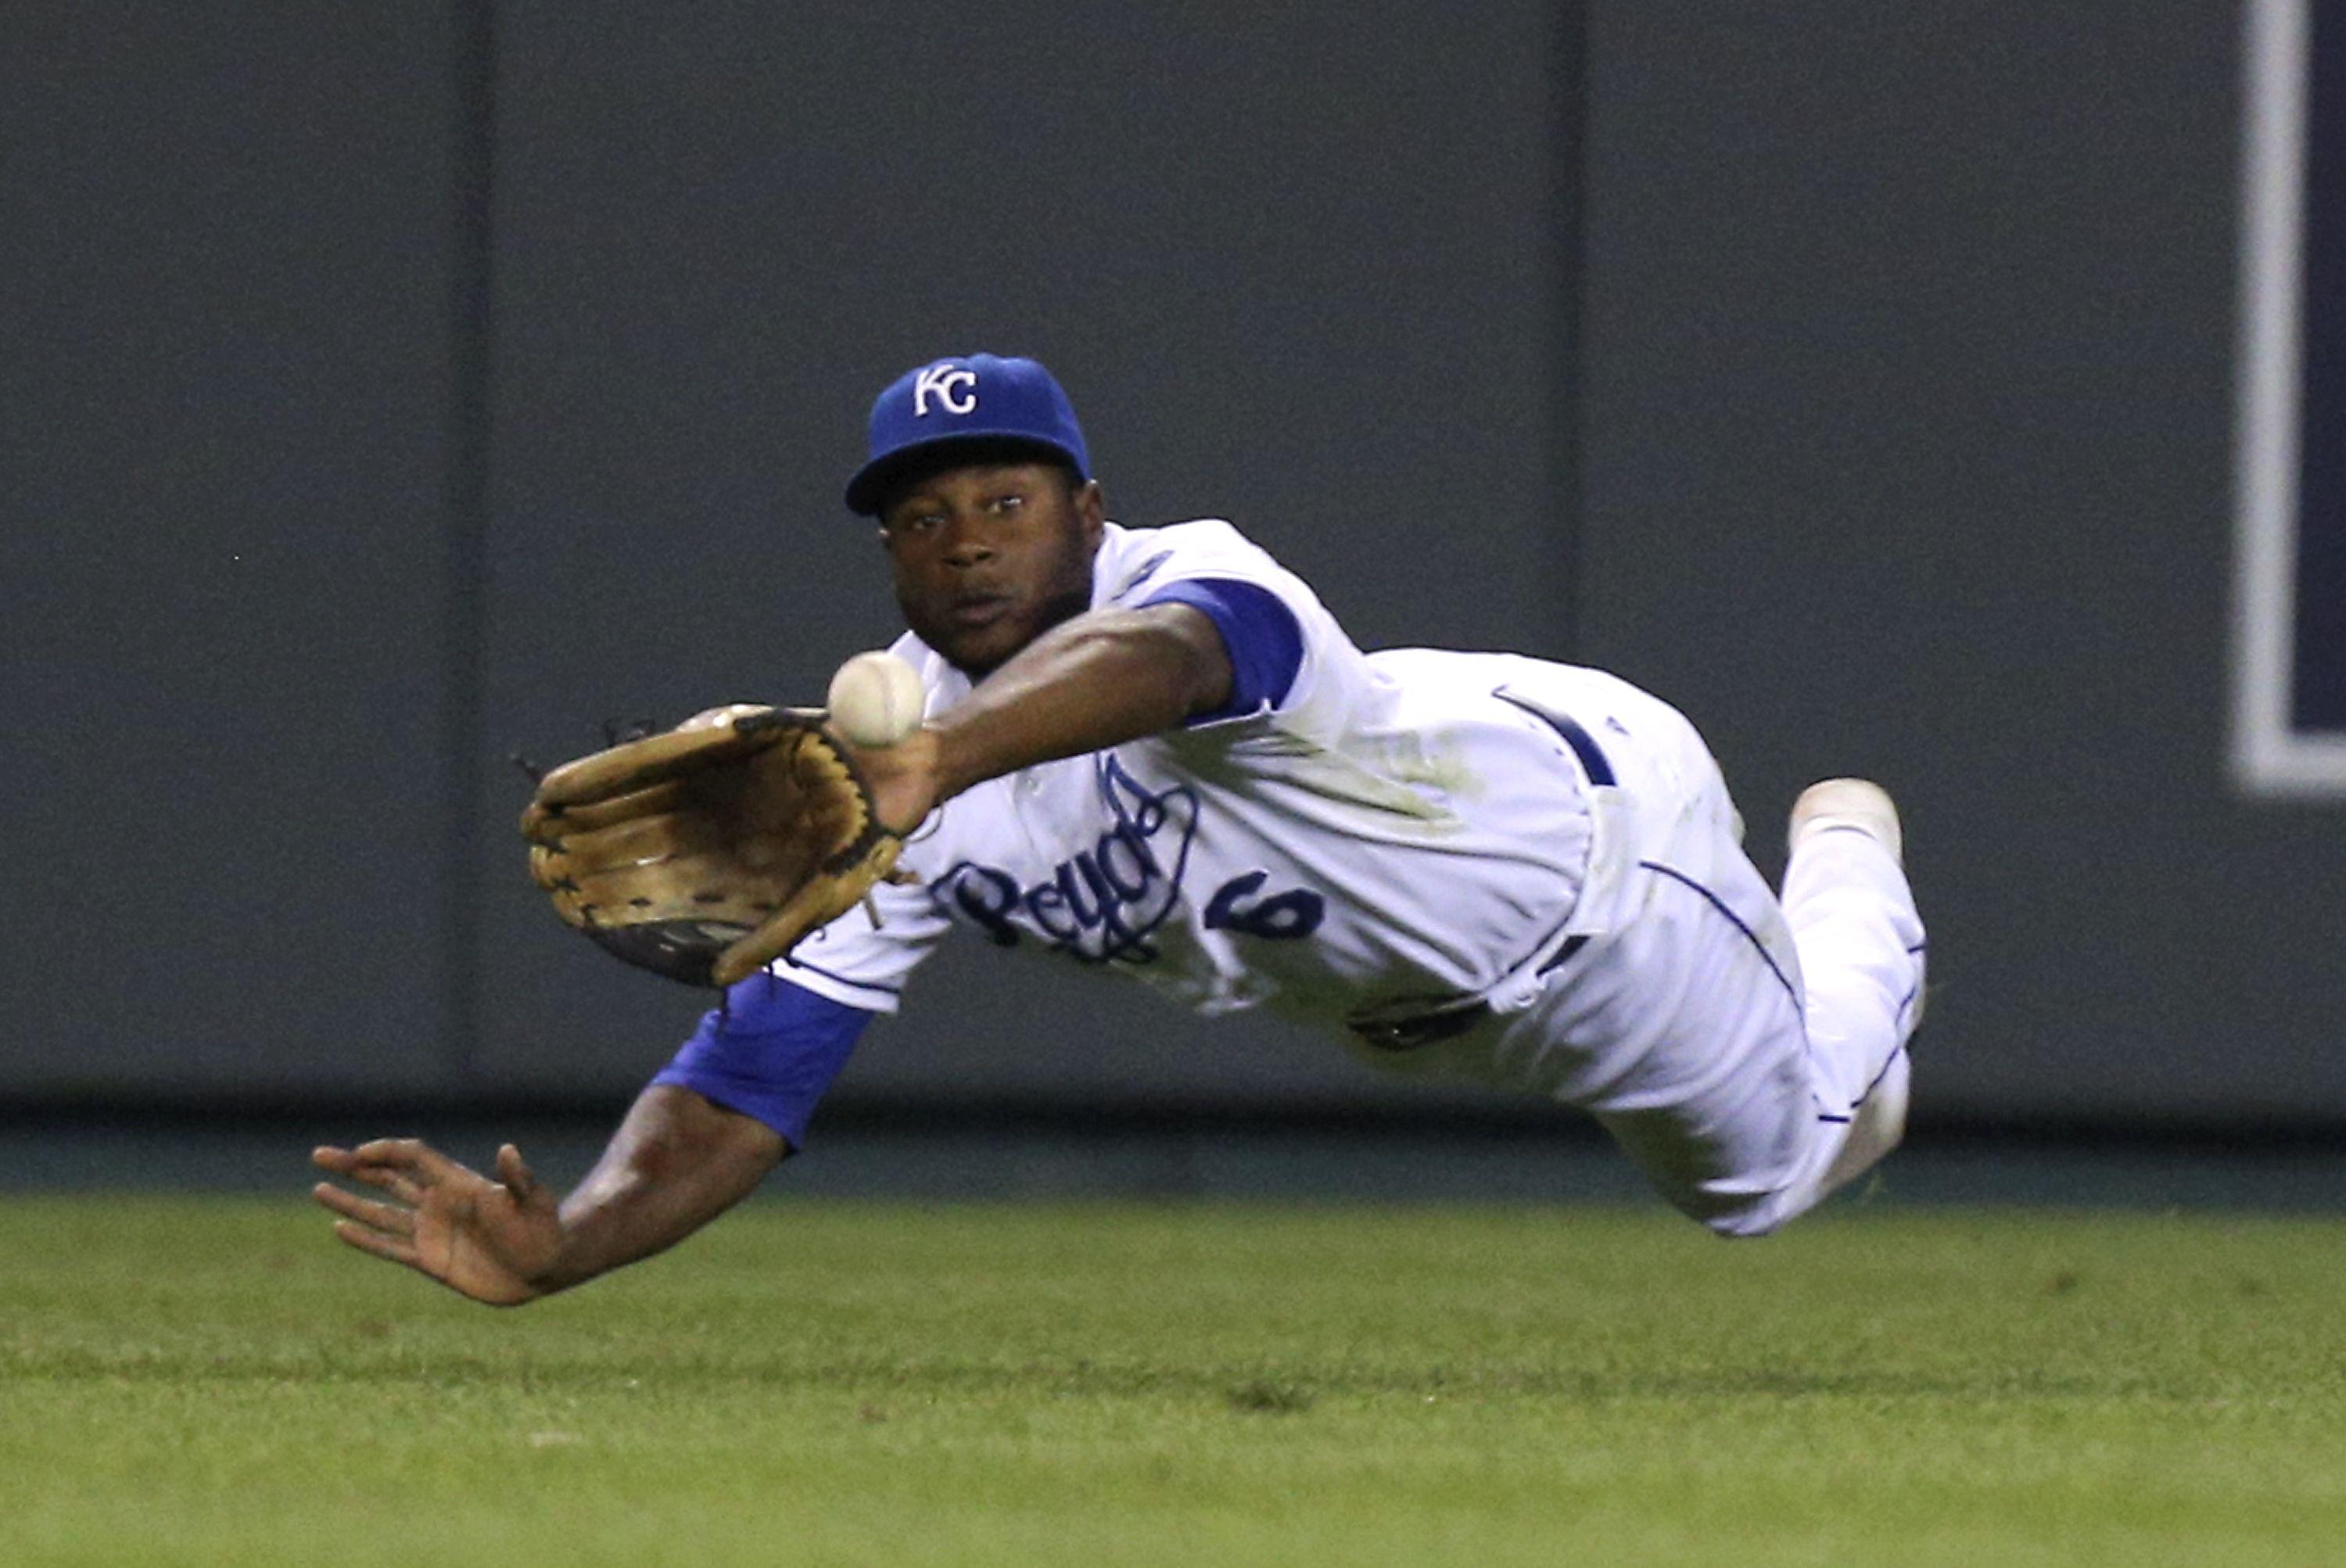 Are You Falling in Love with the Kansas City Royals Yet? » The ...